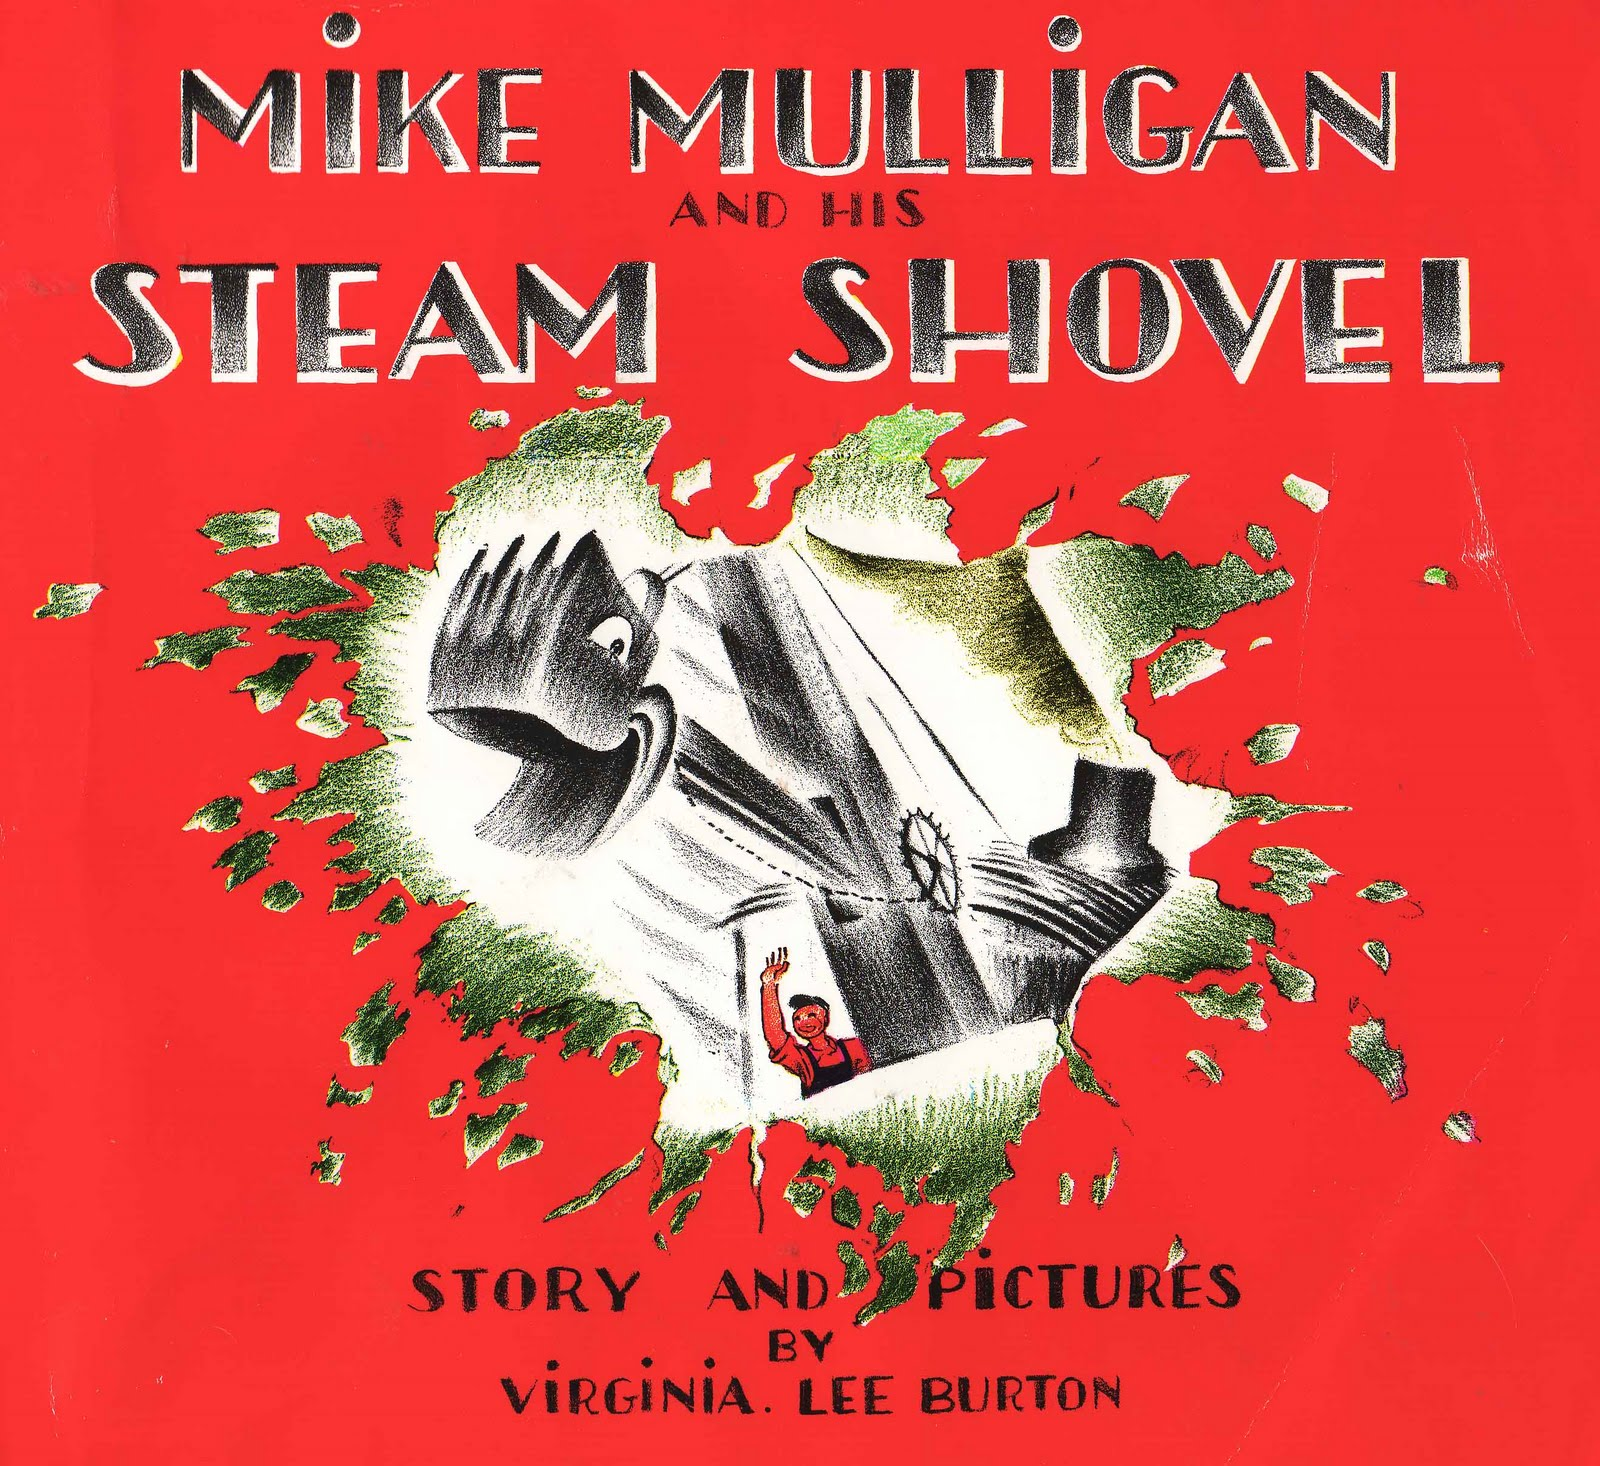 Mike Mulligan and His Steam Shovel, by Virginia Lee Burton.                                                                                                                            A man and his steam shovel prove their worth in this testament to friendship and hard work.                                                                                                                            Buy now: Mike Mulligan and His Steam Shovel